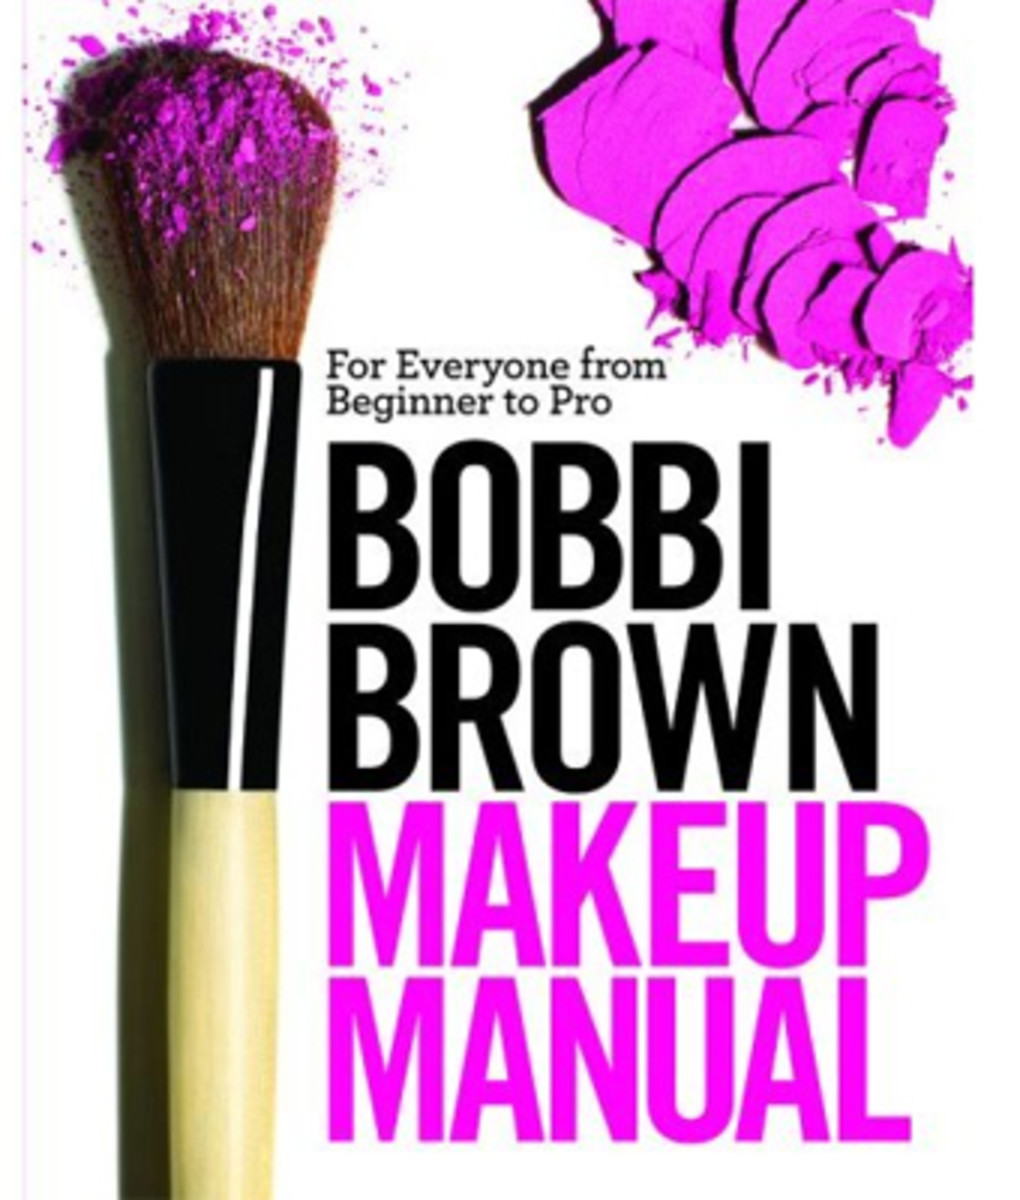 Bobbi-Brown-Makeup-Manual